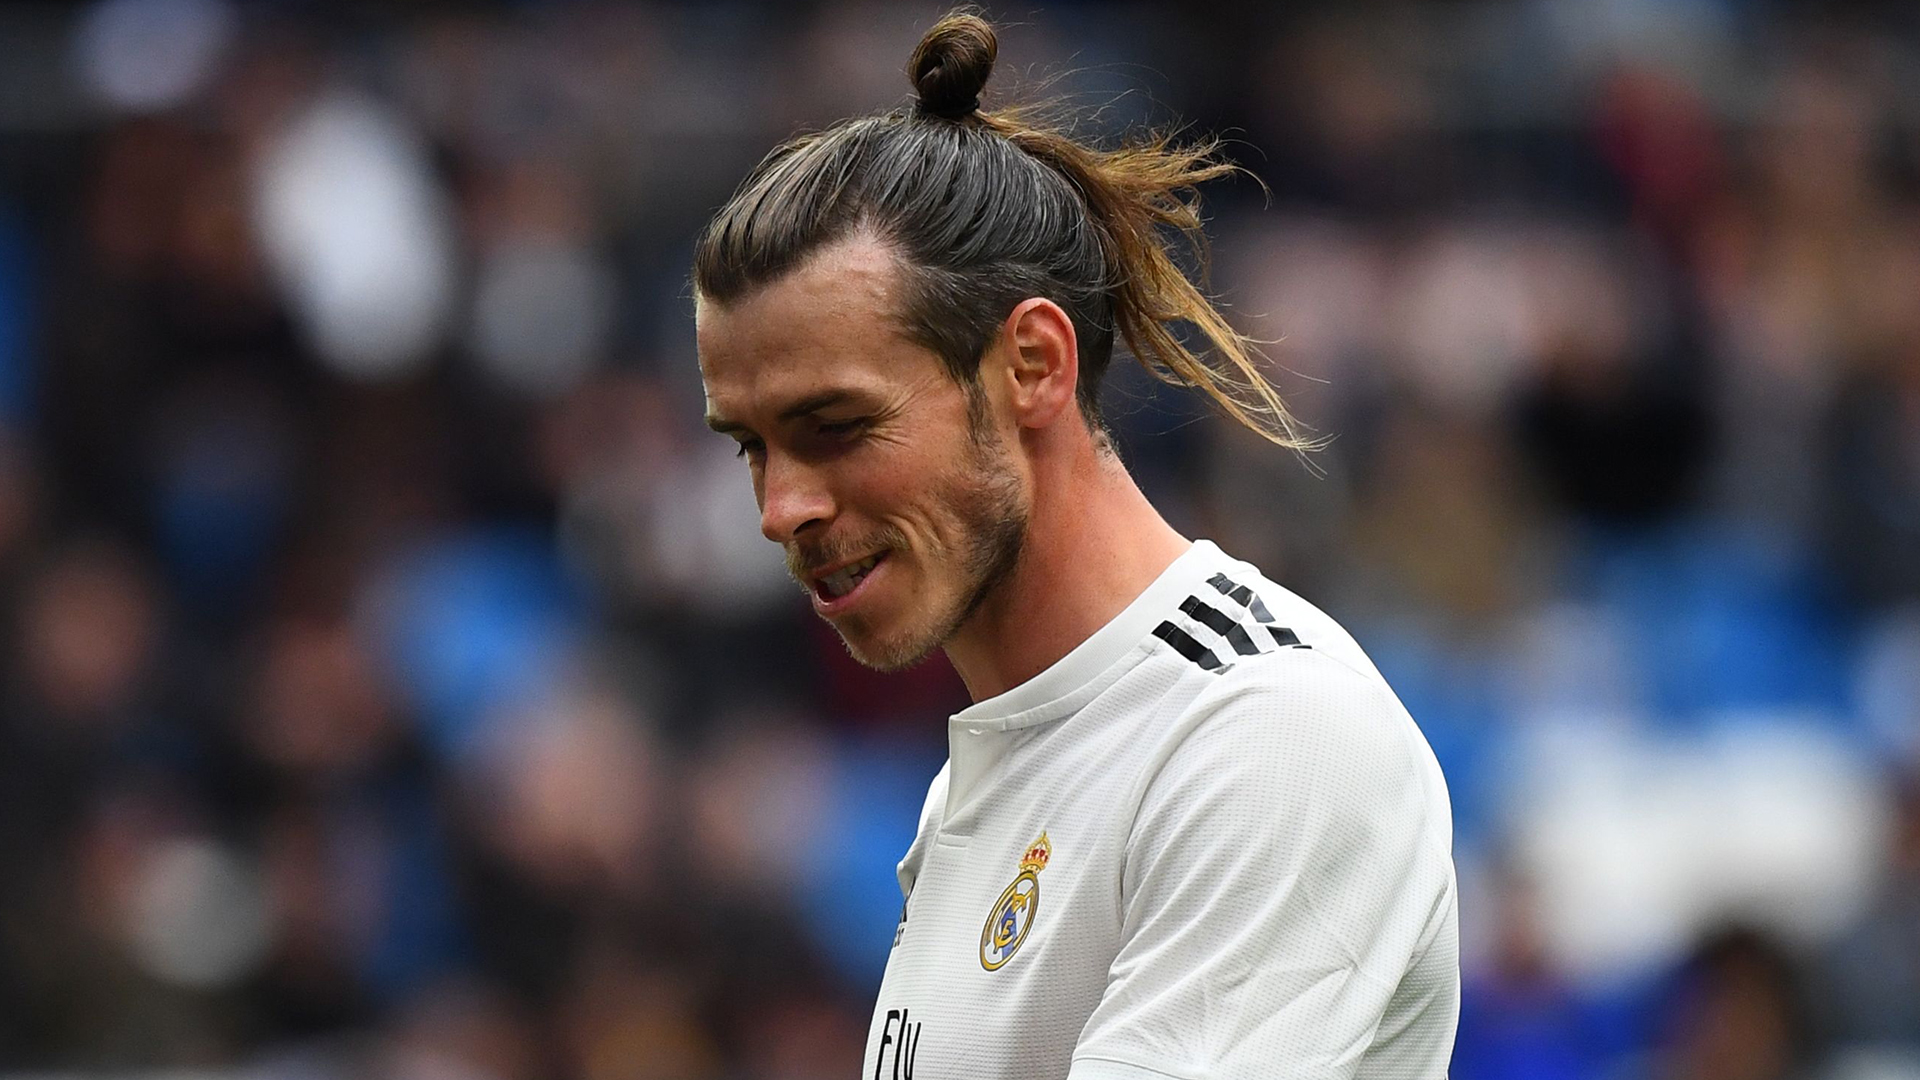 Video: I don't know if Spurs are signing Bale - Pochettino